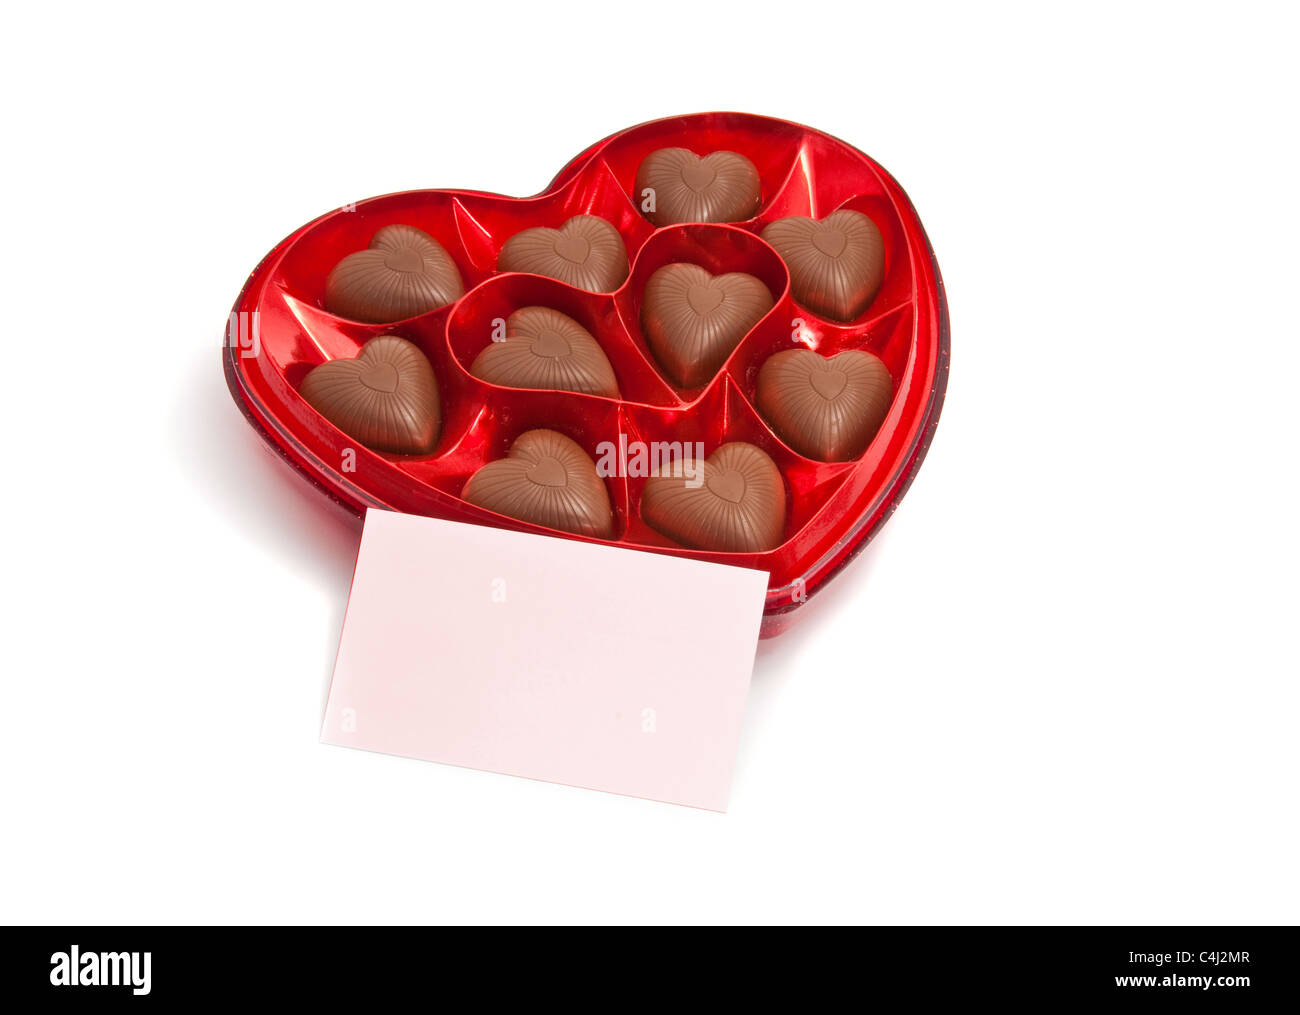 chocolate heart shape on white background with message card - Stock Image